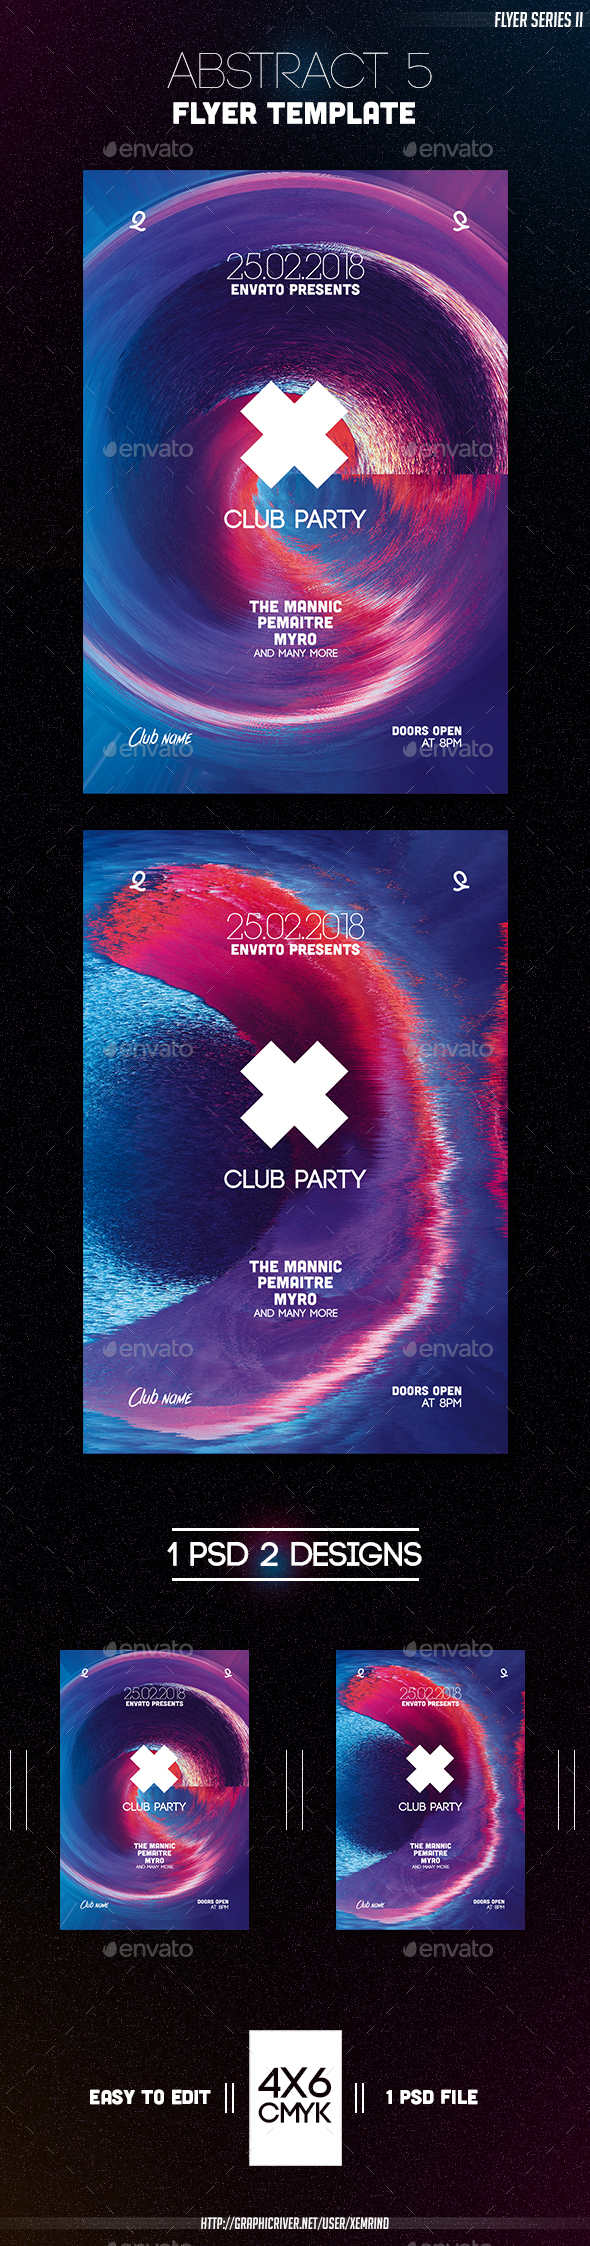 Abstract 5 Flyer Template - Clubs & Parties Events